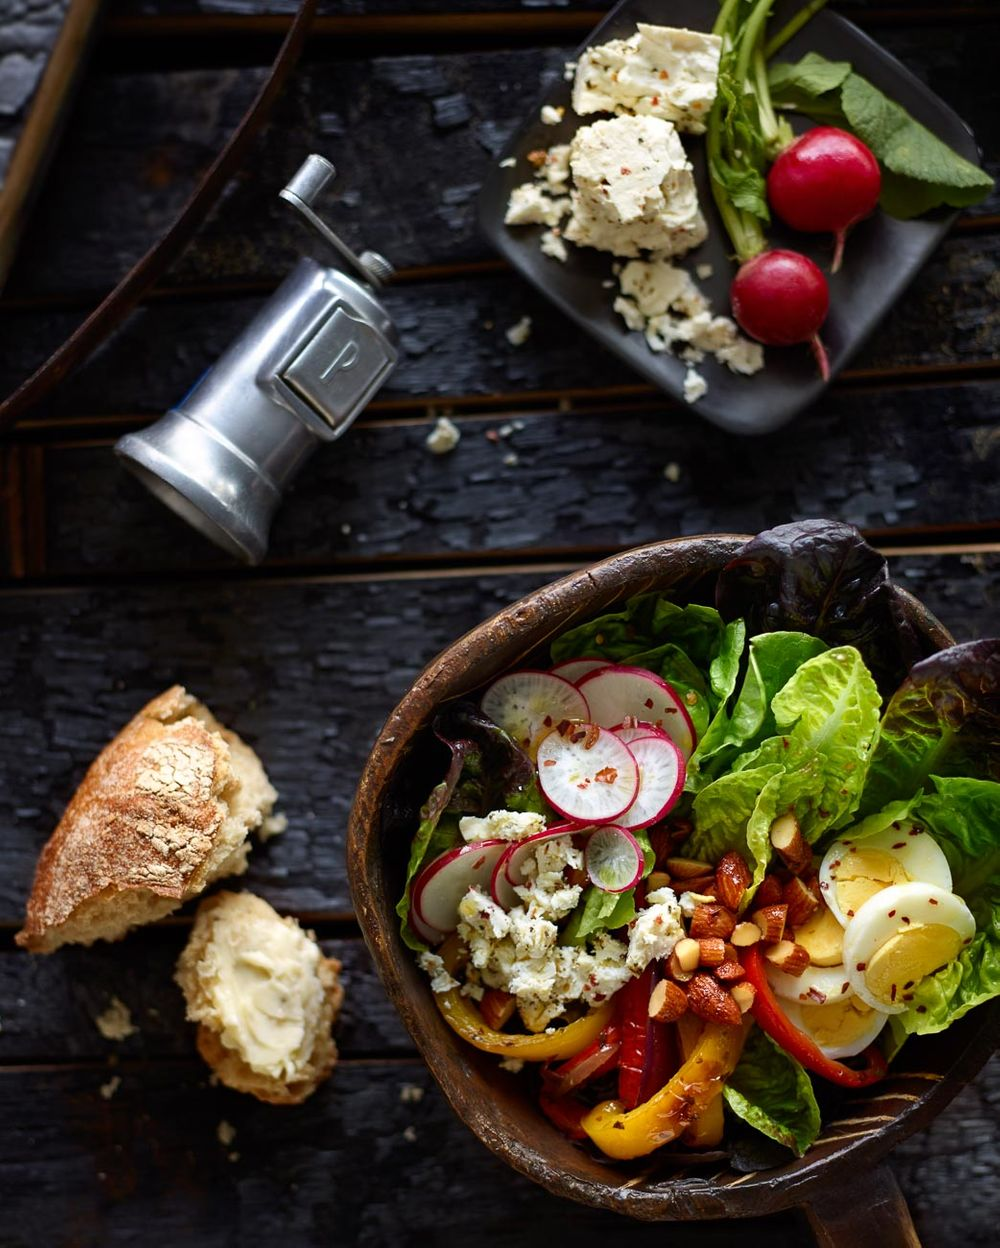 Rustic salad with bread and cheese